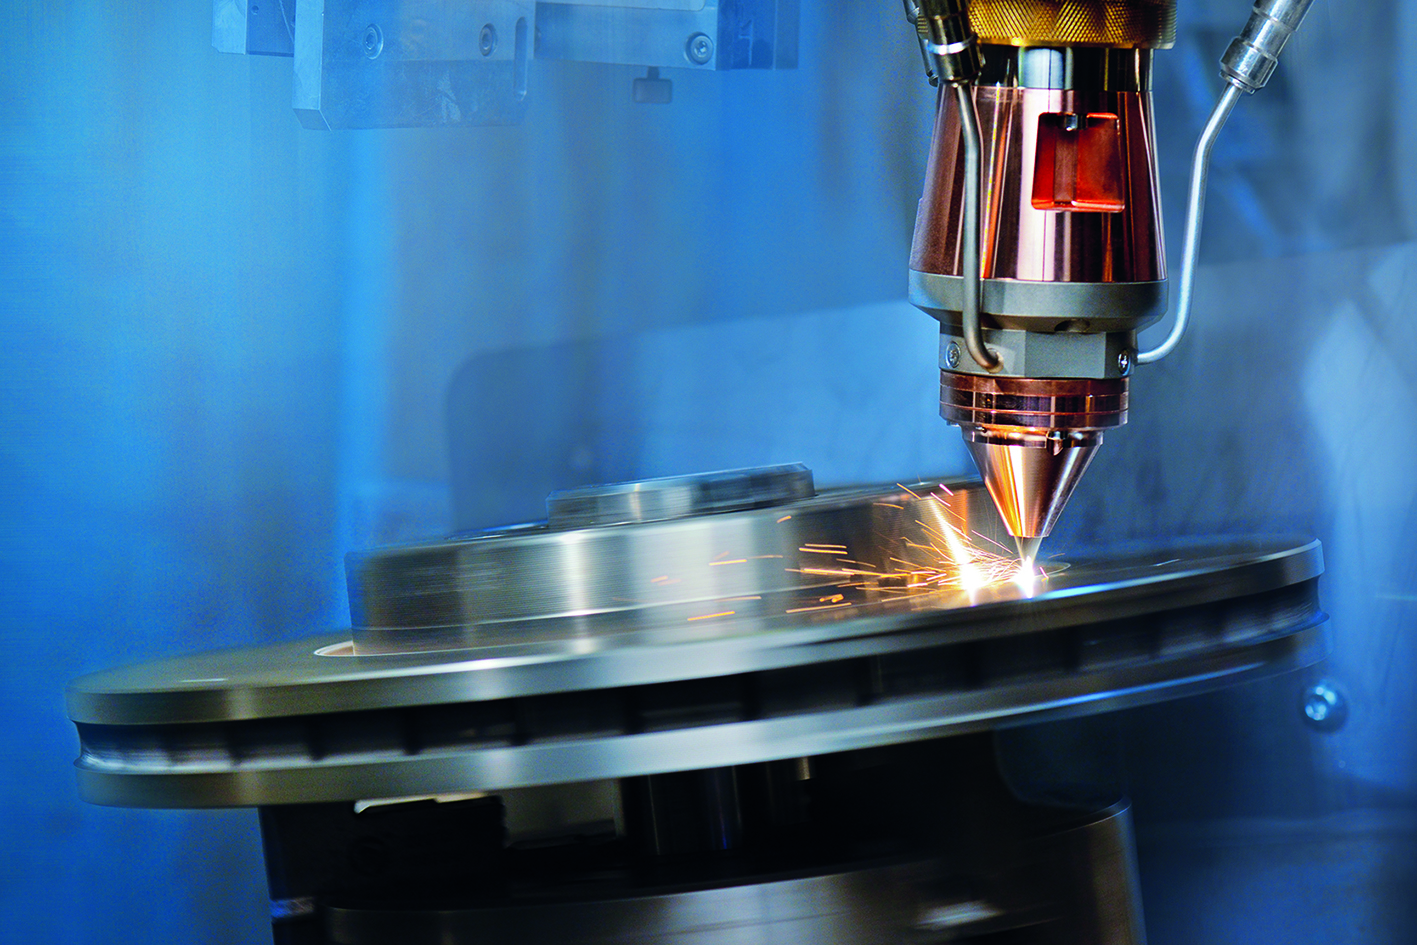 Coating a brake disc using LMD. Photo via Fraunhofer ILT.